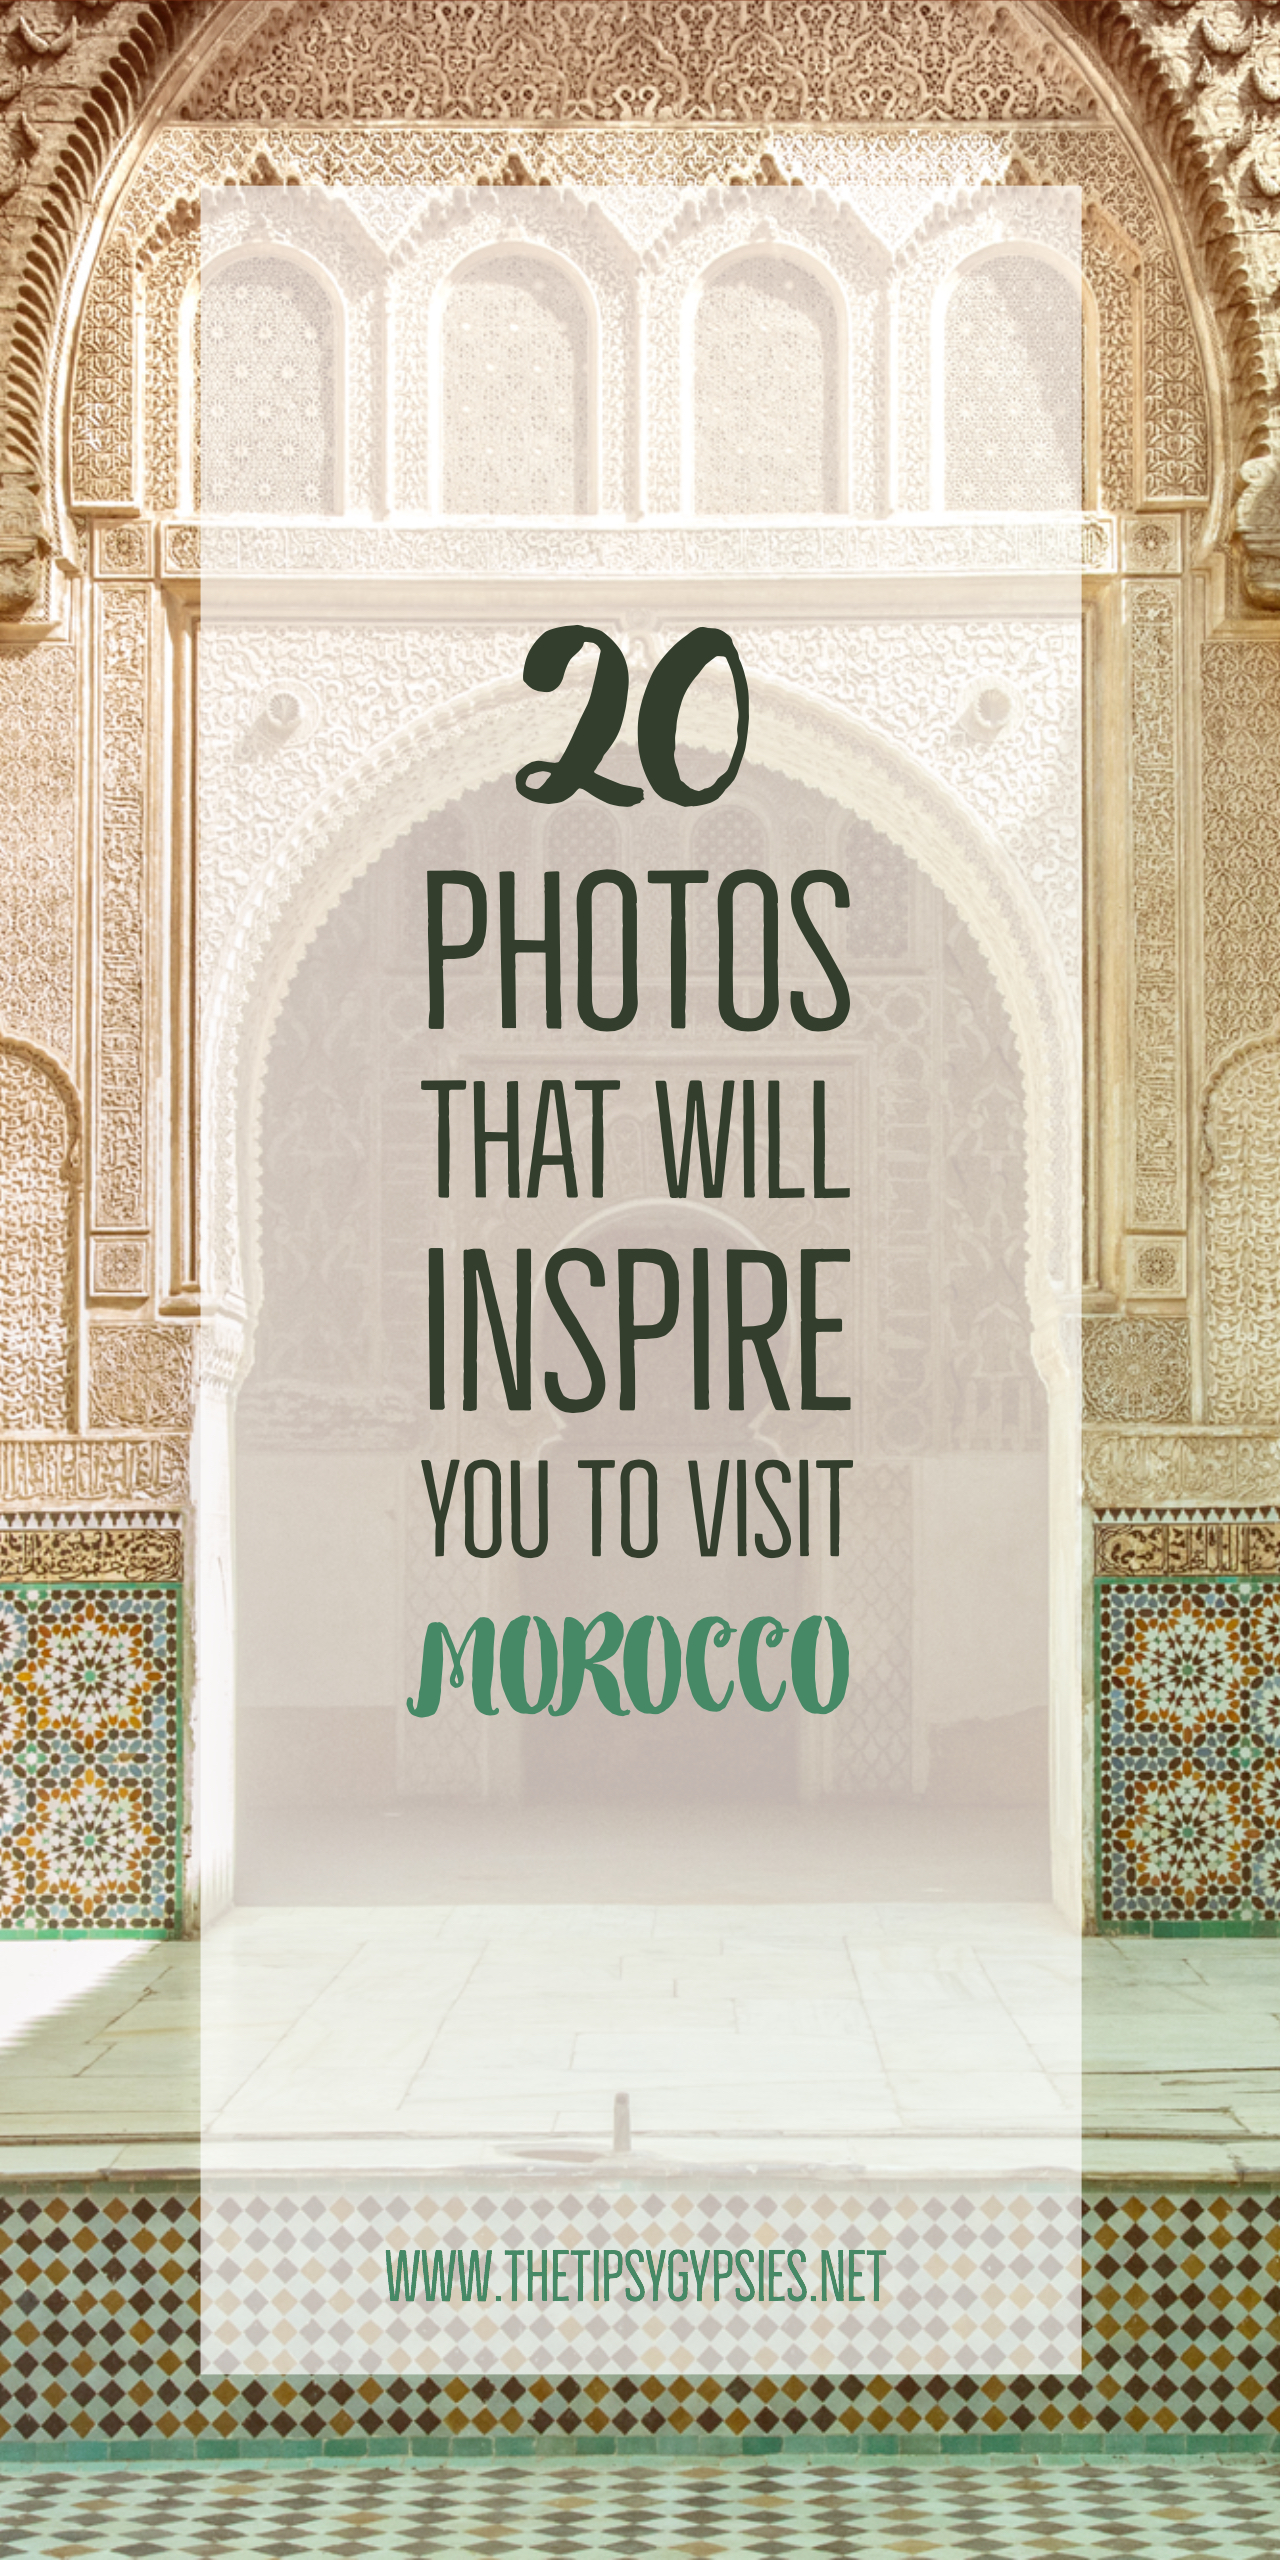 BEAUTIFUL MOROCCO